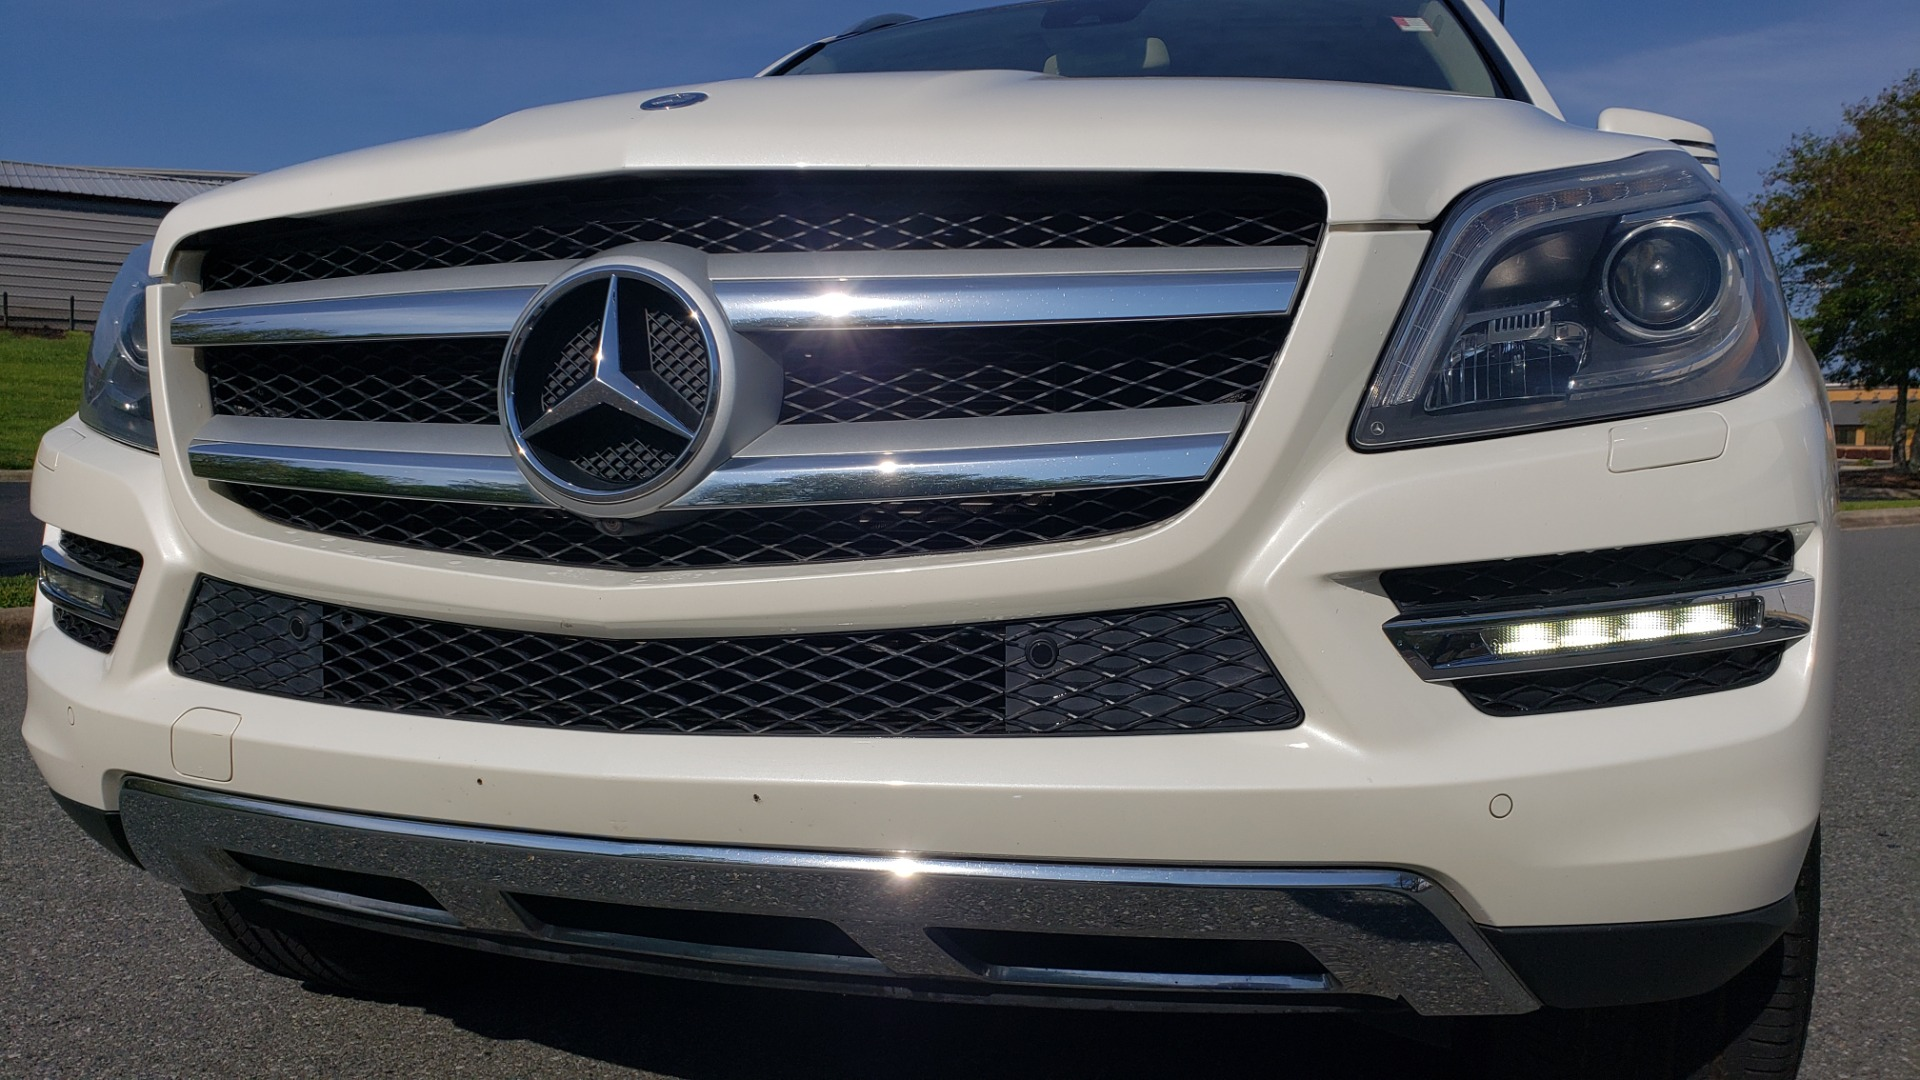 Used 2014 Mercedes-Benz GL-Class GL 450 PREMIUM / NAV / SUNROOF / 3-ROW / REARVIEW for sale Sold at Formula Imports in Charlotte NC 28227 31